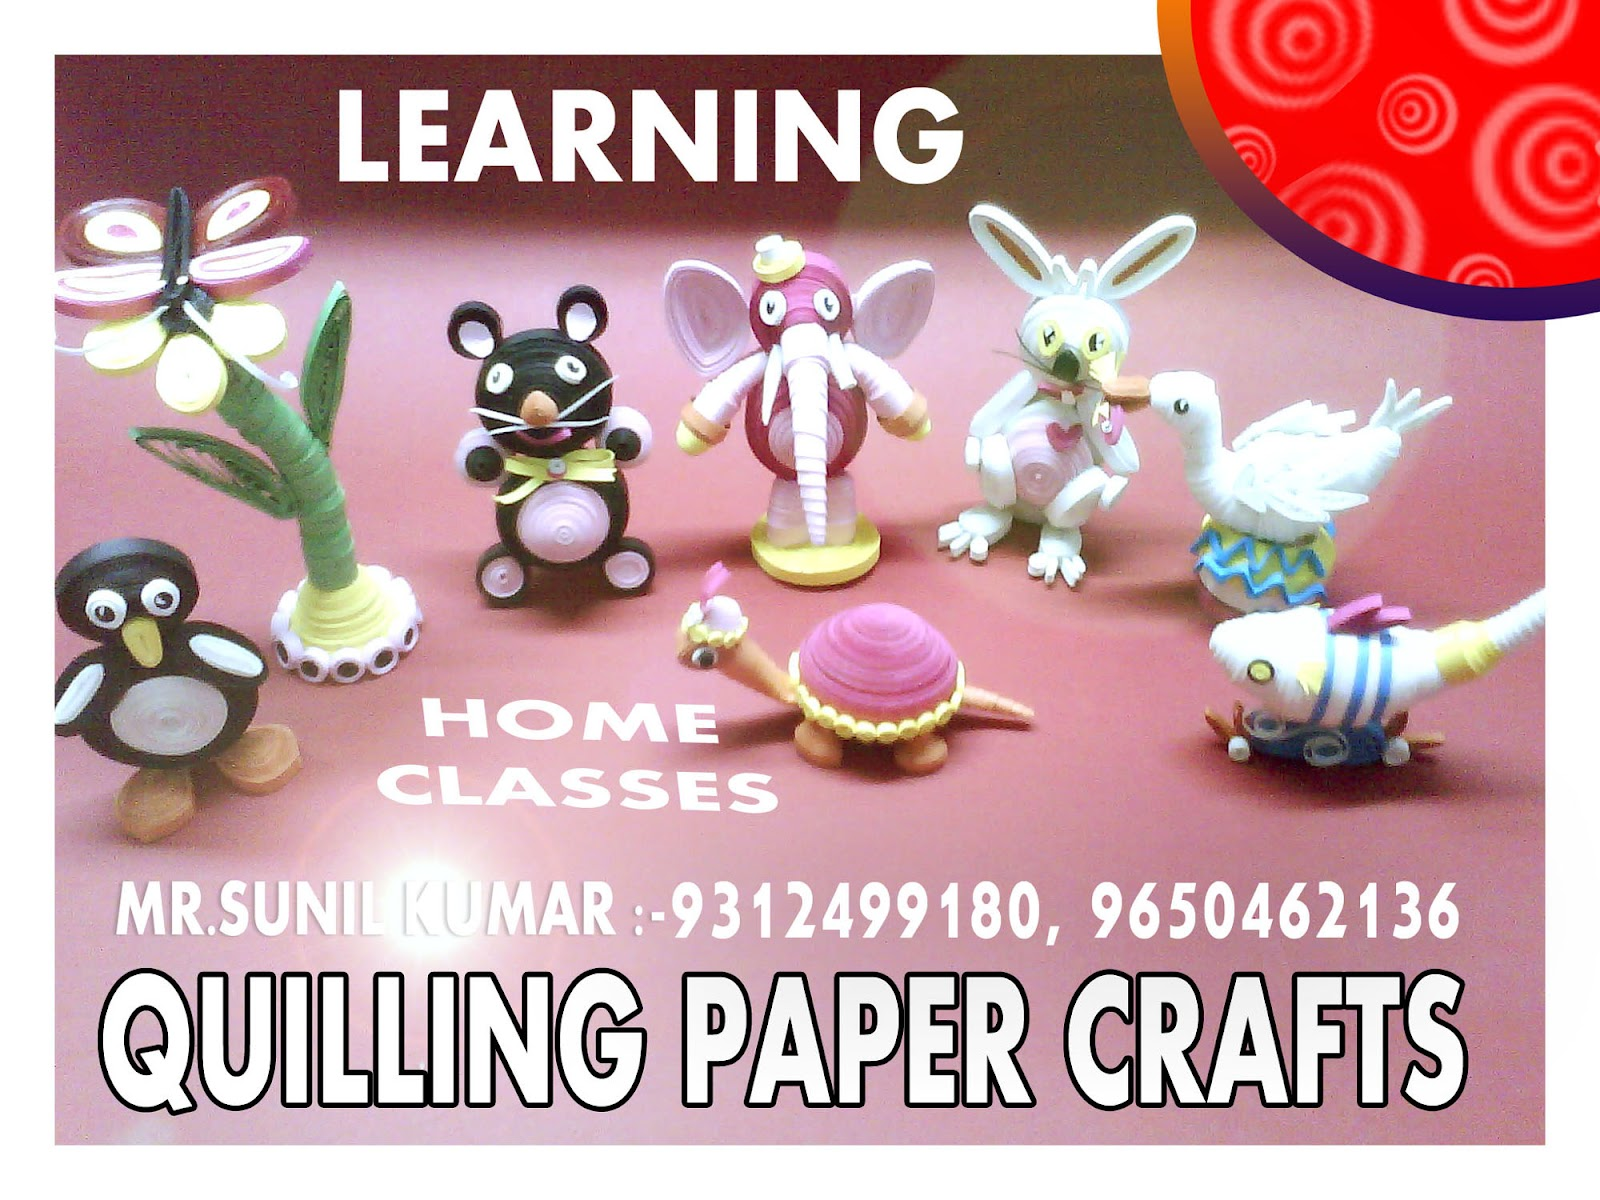 Creative fine art crafts institute 9650462136 home for Craft work at home